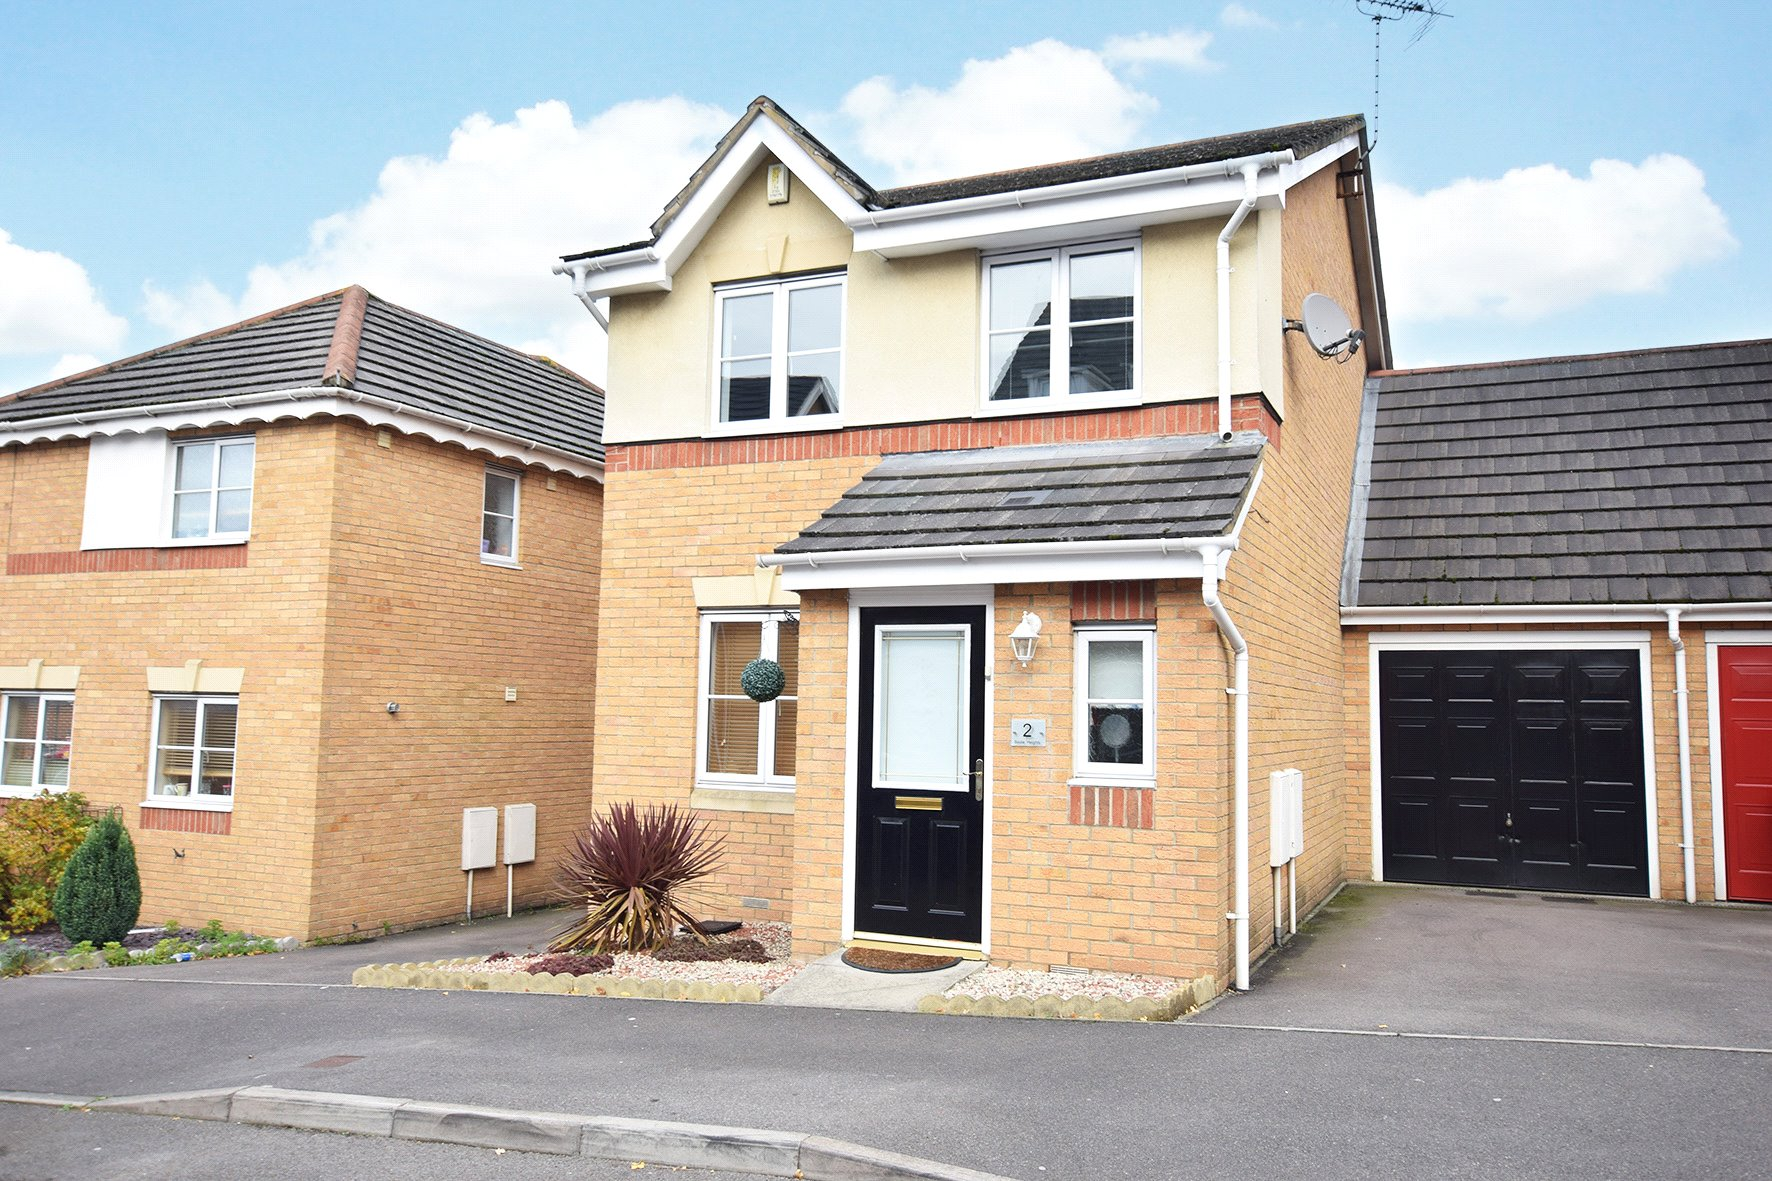 3 Bedrooms Link Detached House for sale in Boole Heights, Bracknell, Berkshire, RG12